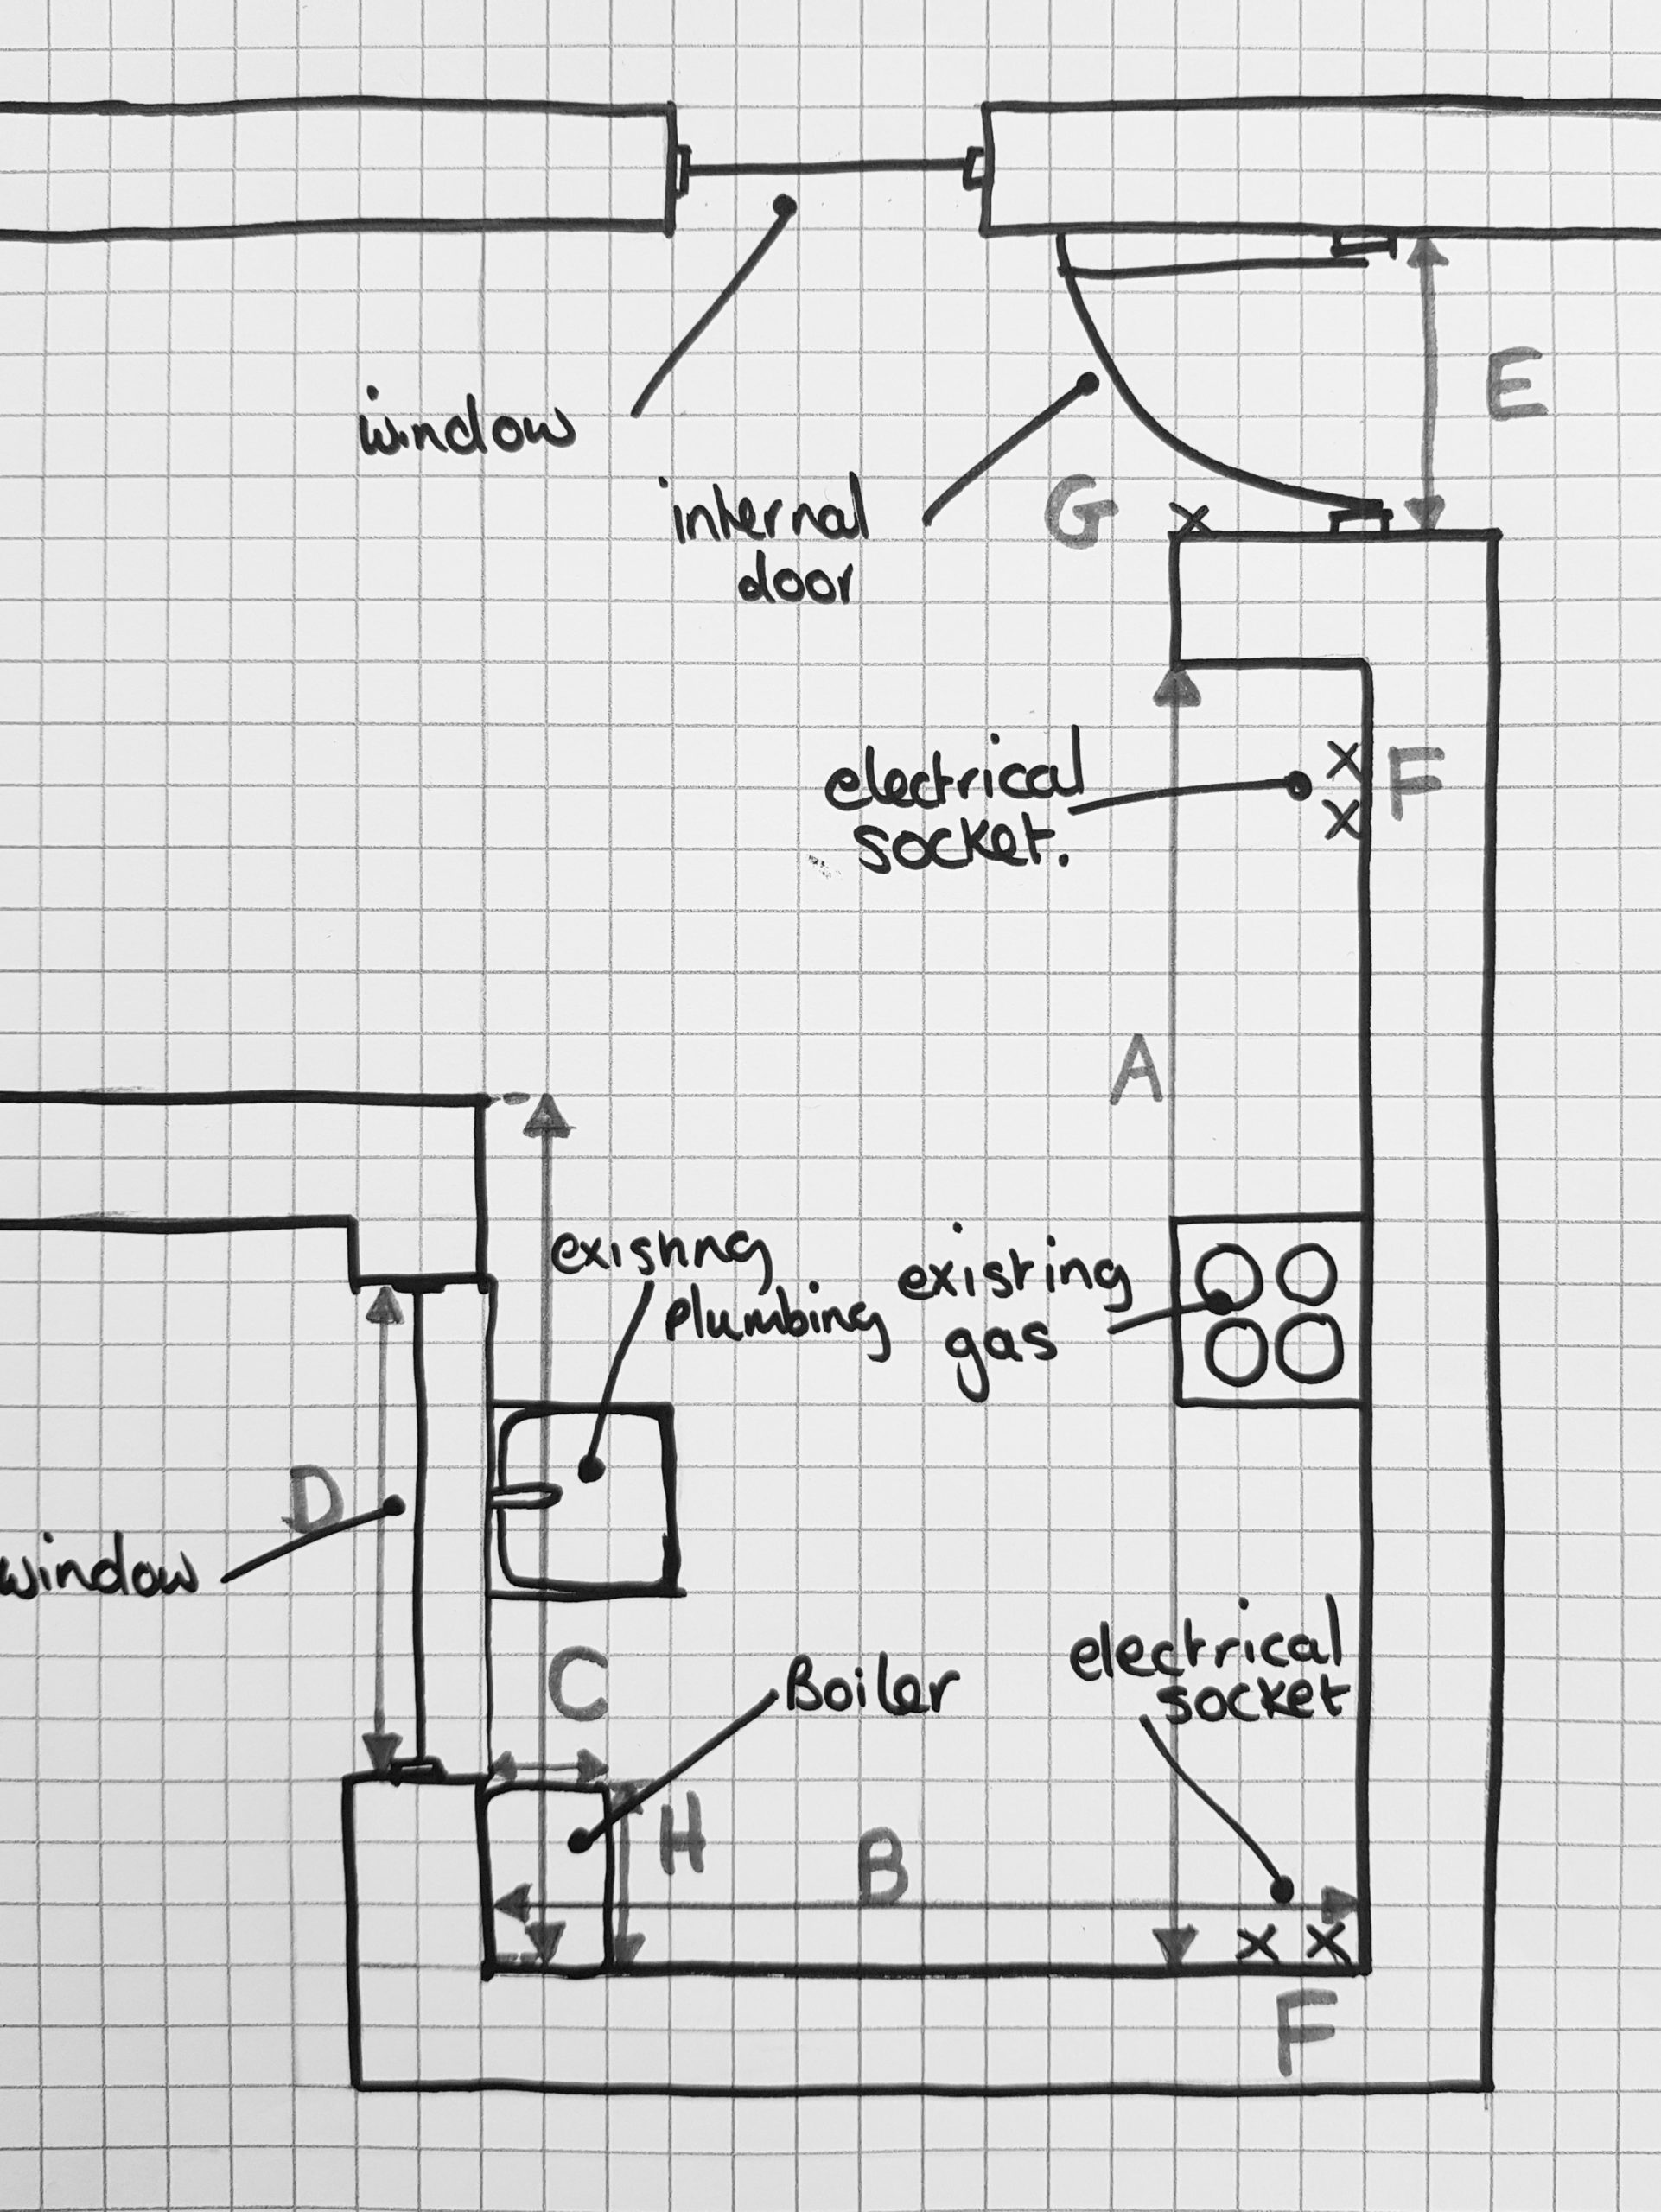 Plan of a kitchen showing where to measure